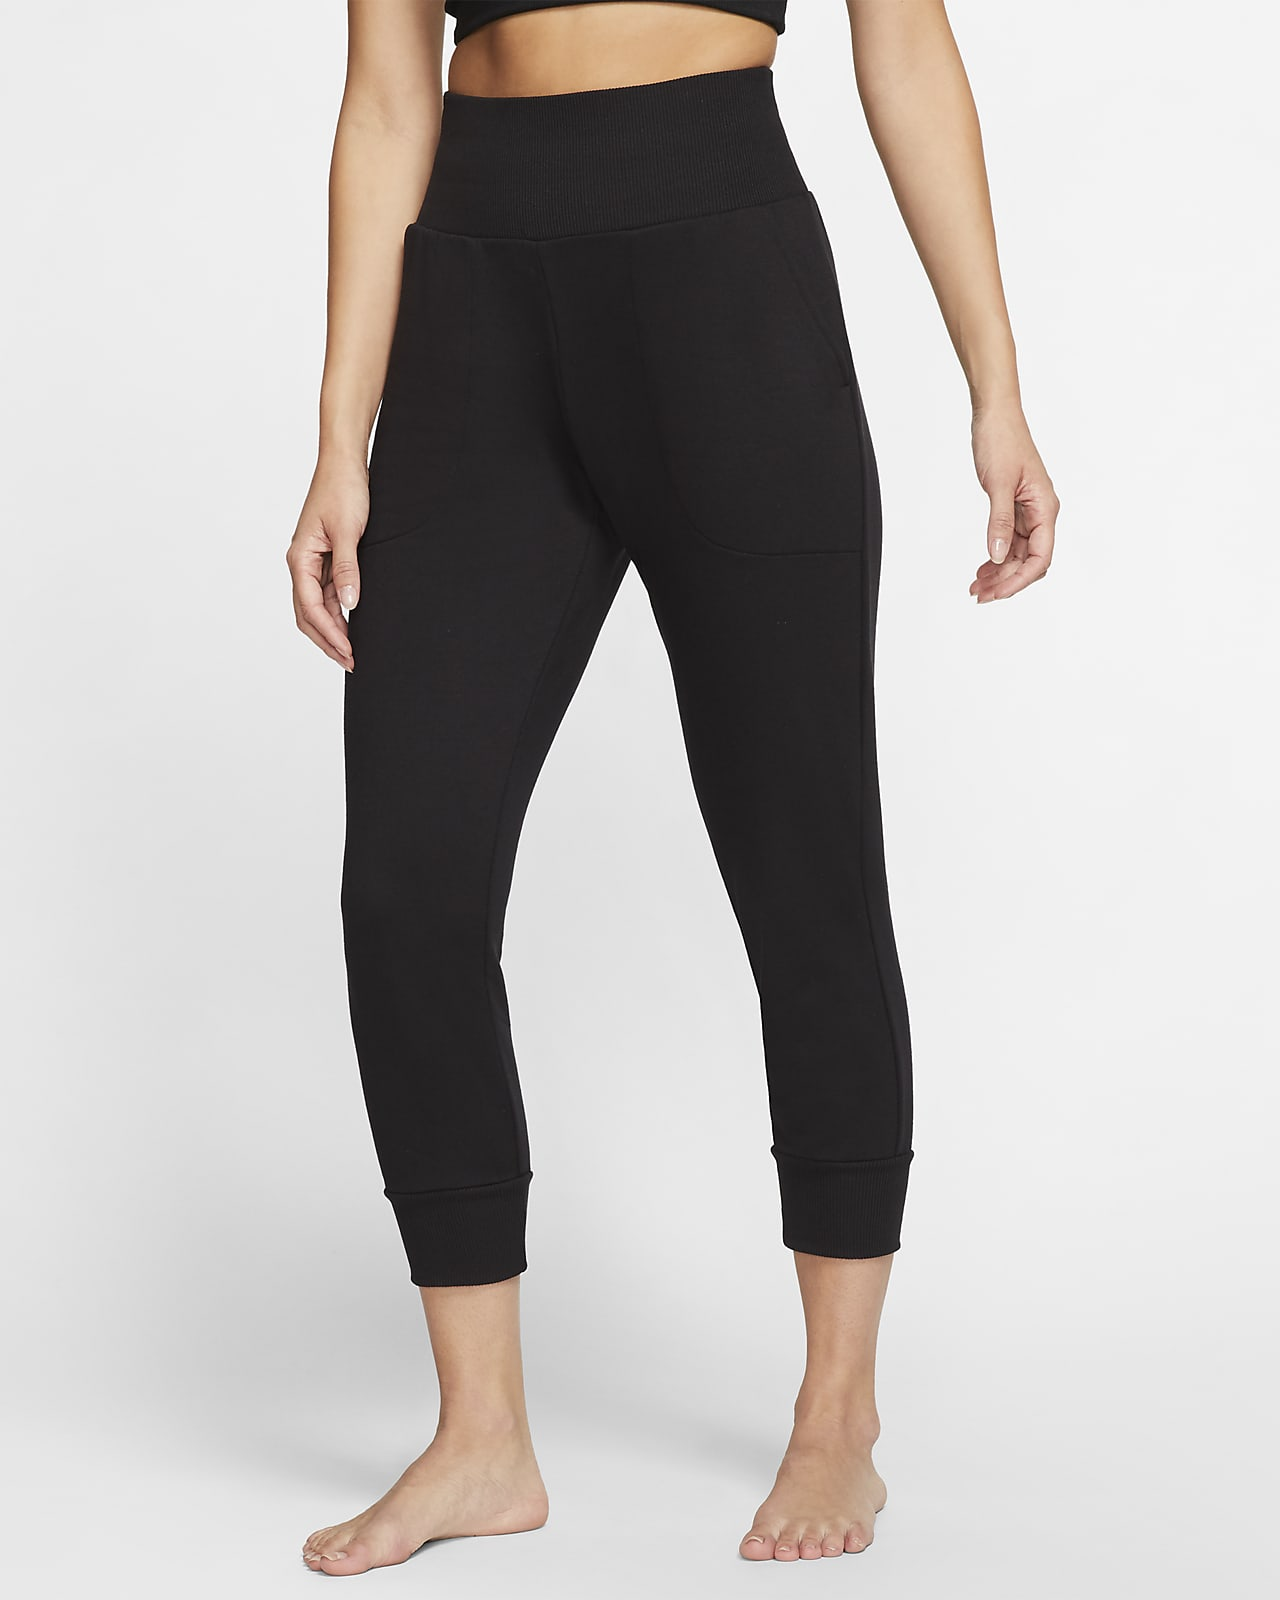 Nike Yoga Women's Pants